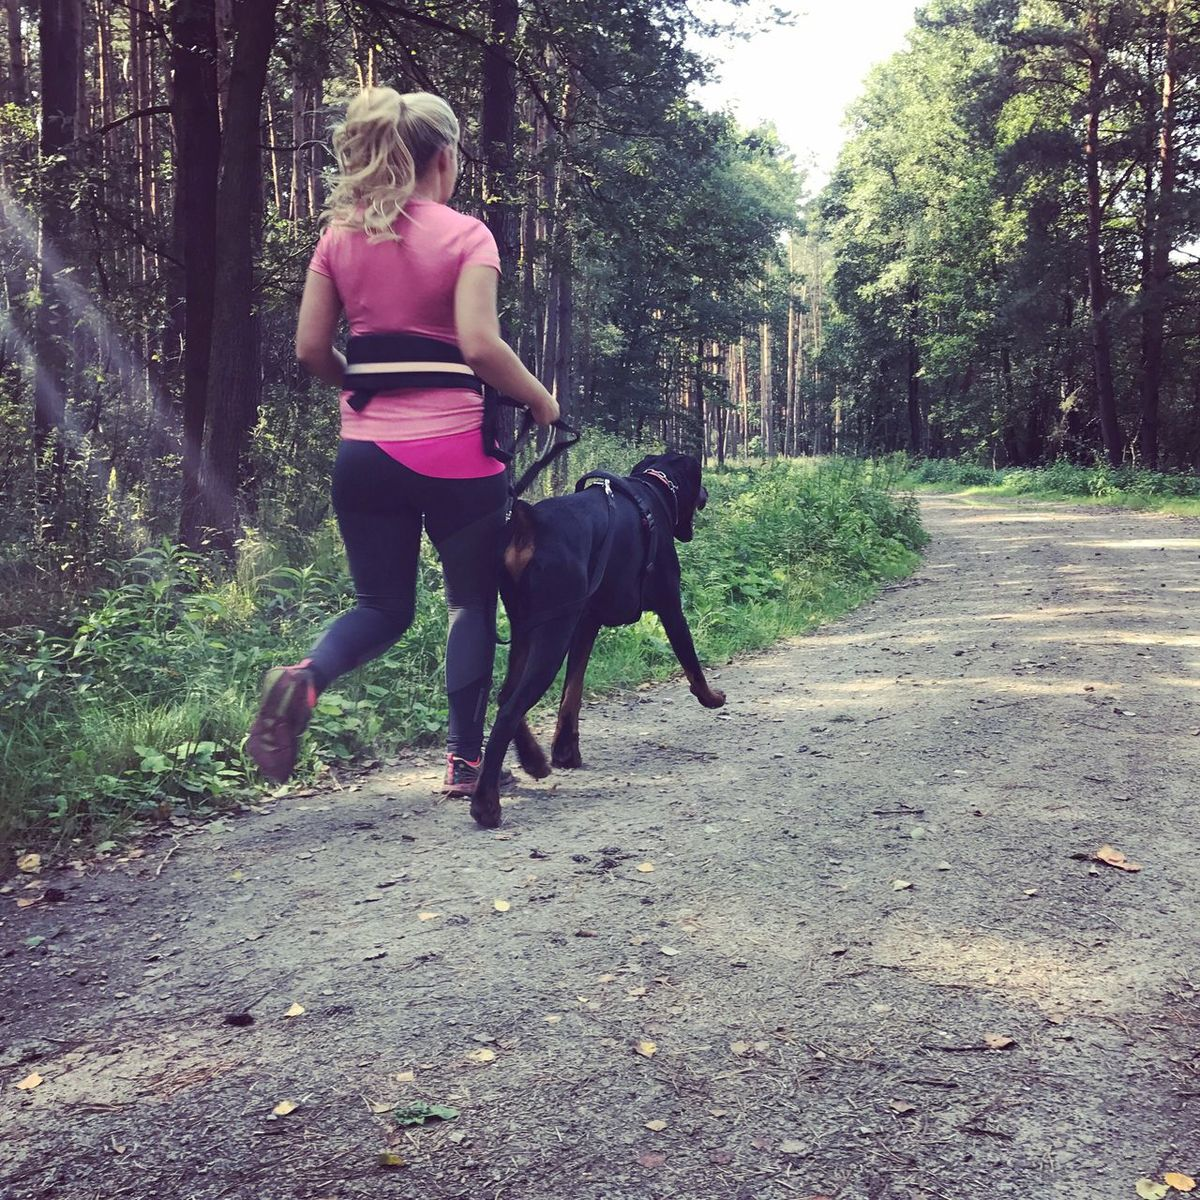 Canicross Dog Running Working Out Animal Themes Jogging Sport Full Length Rear View Real People Lifestyles Pets Doberman  Young Women Healthy Lifestyle Activity One Person Day Forest Tree Outdoors Working Animal